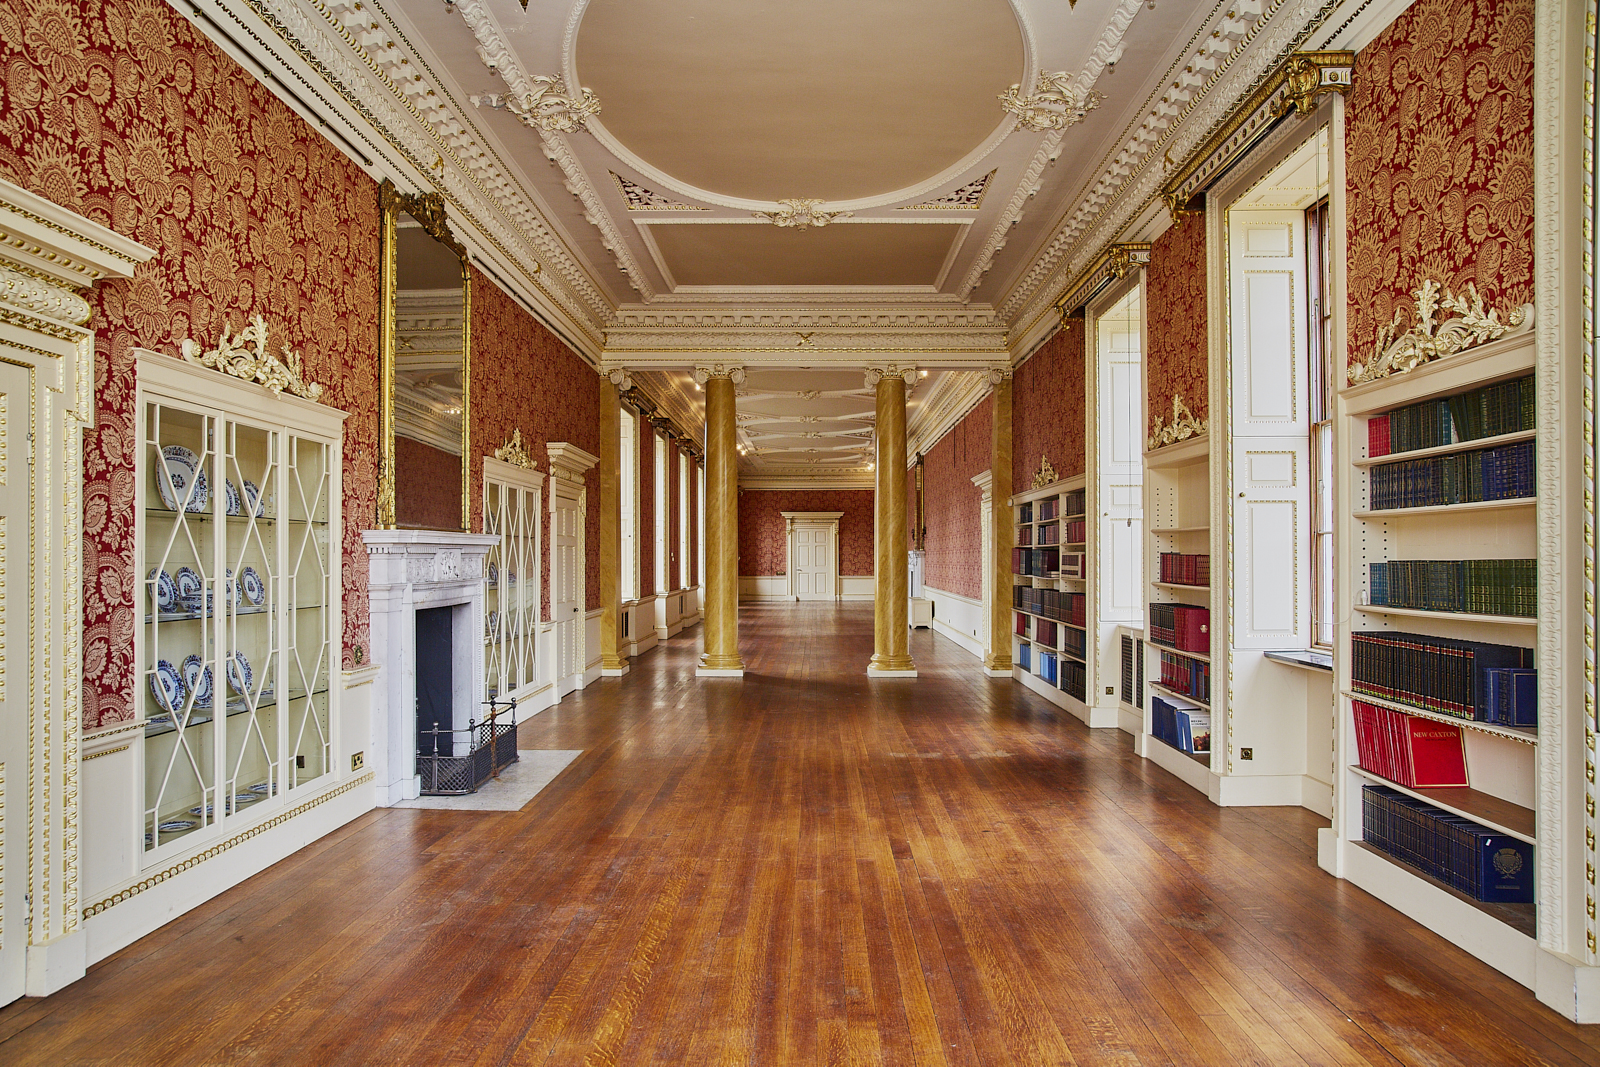 The Long Gallery at Wentworth Woodhouse